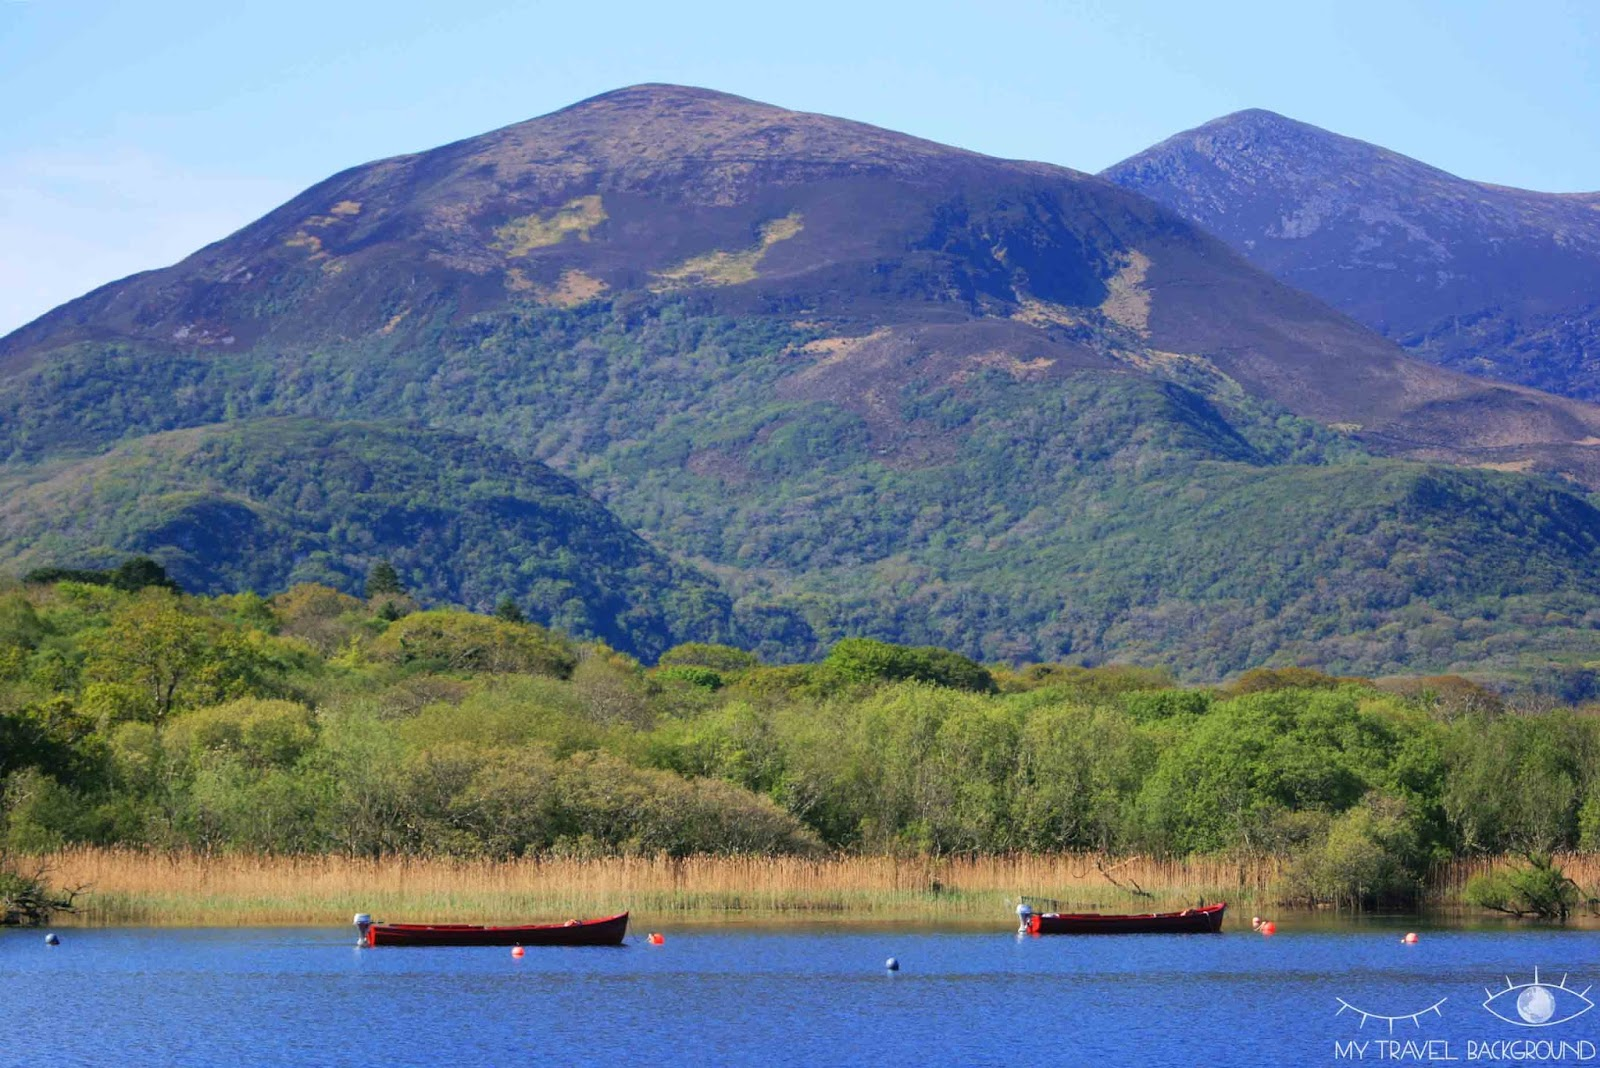 My Travel Background : A la découverte du Ring of Kerry en Irlande